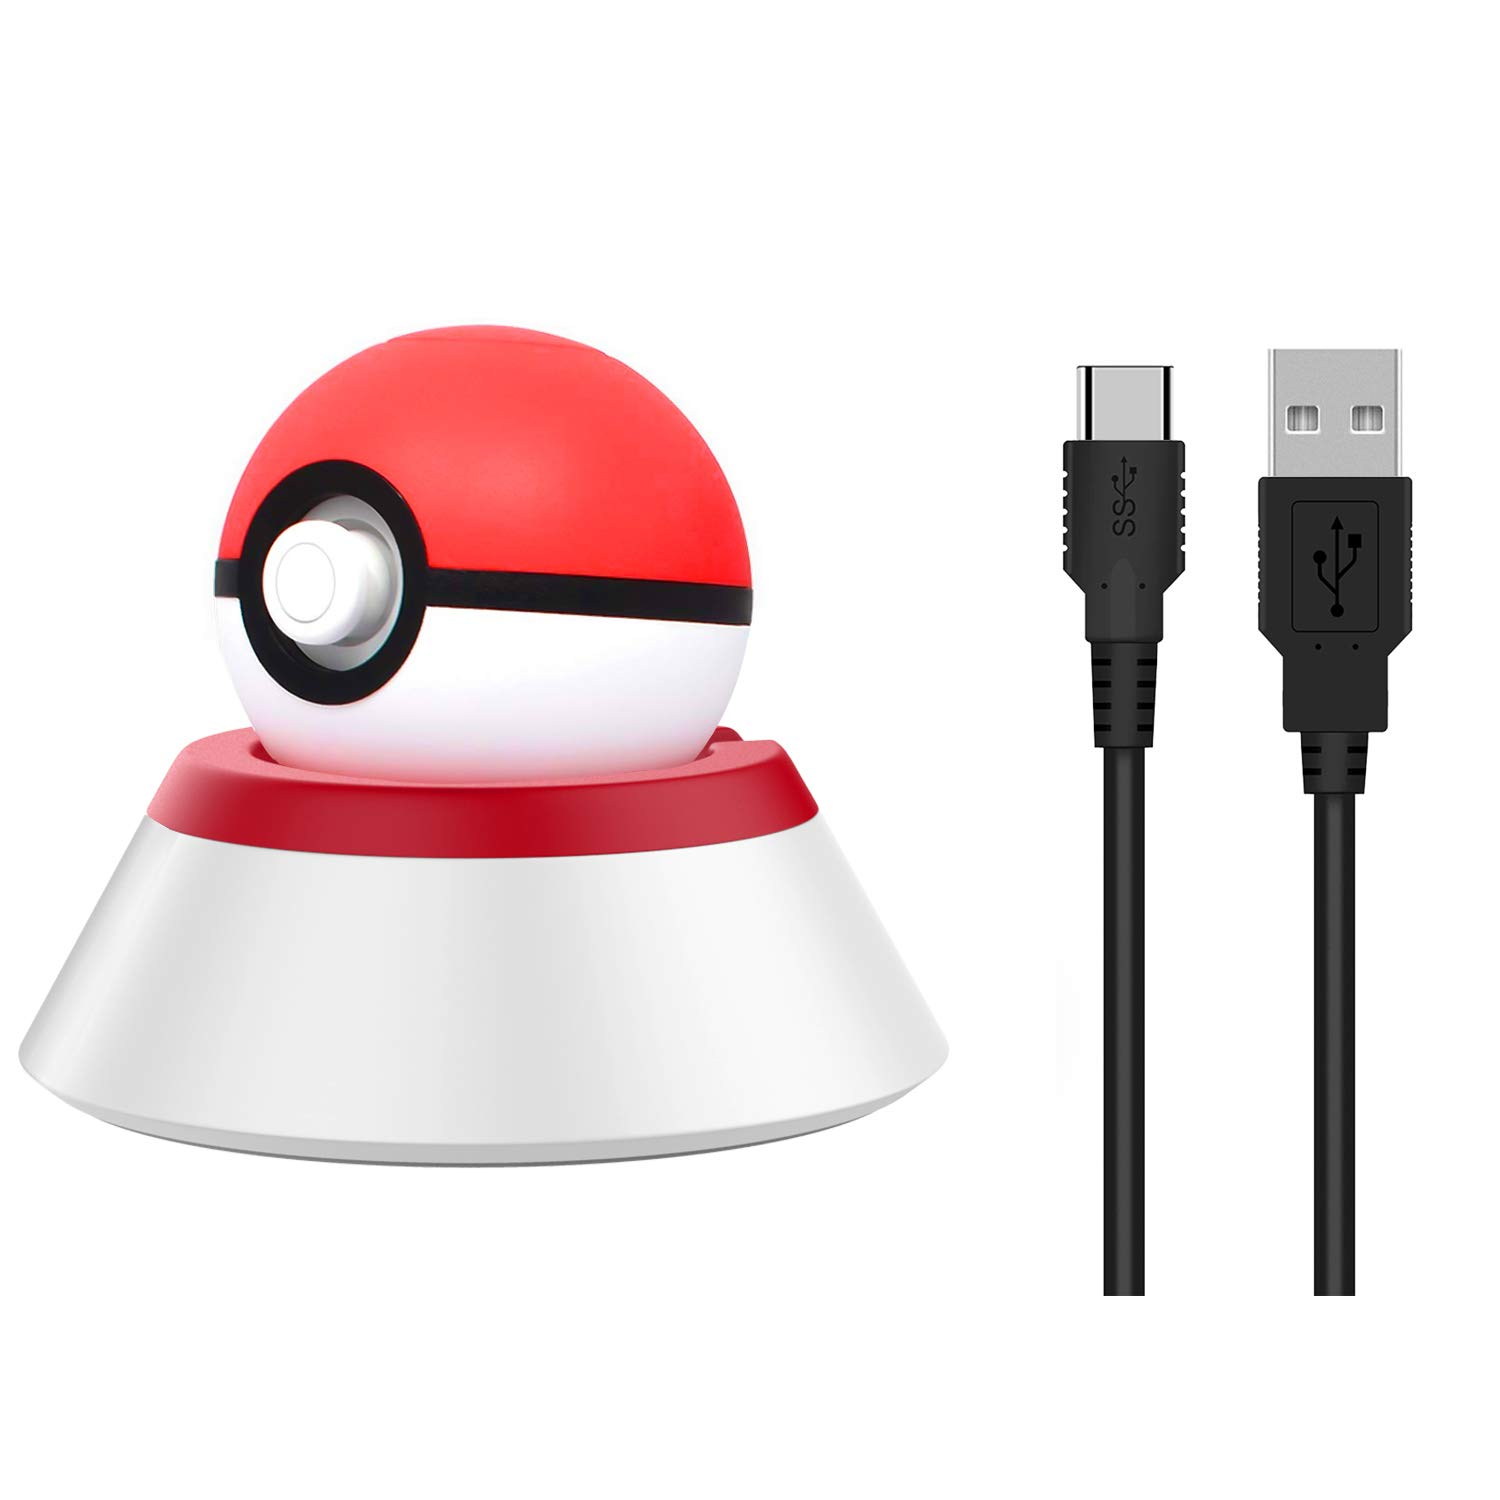 MoKo Charging Stand for Nintendo Switch Poke Ball Plus Controller, Charger Station Holder Charging Dock Mount with Charging Cable for Nintendo Switch Pokeball Plus Controller - Red + White by MoKo